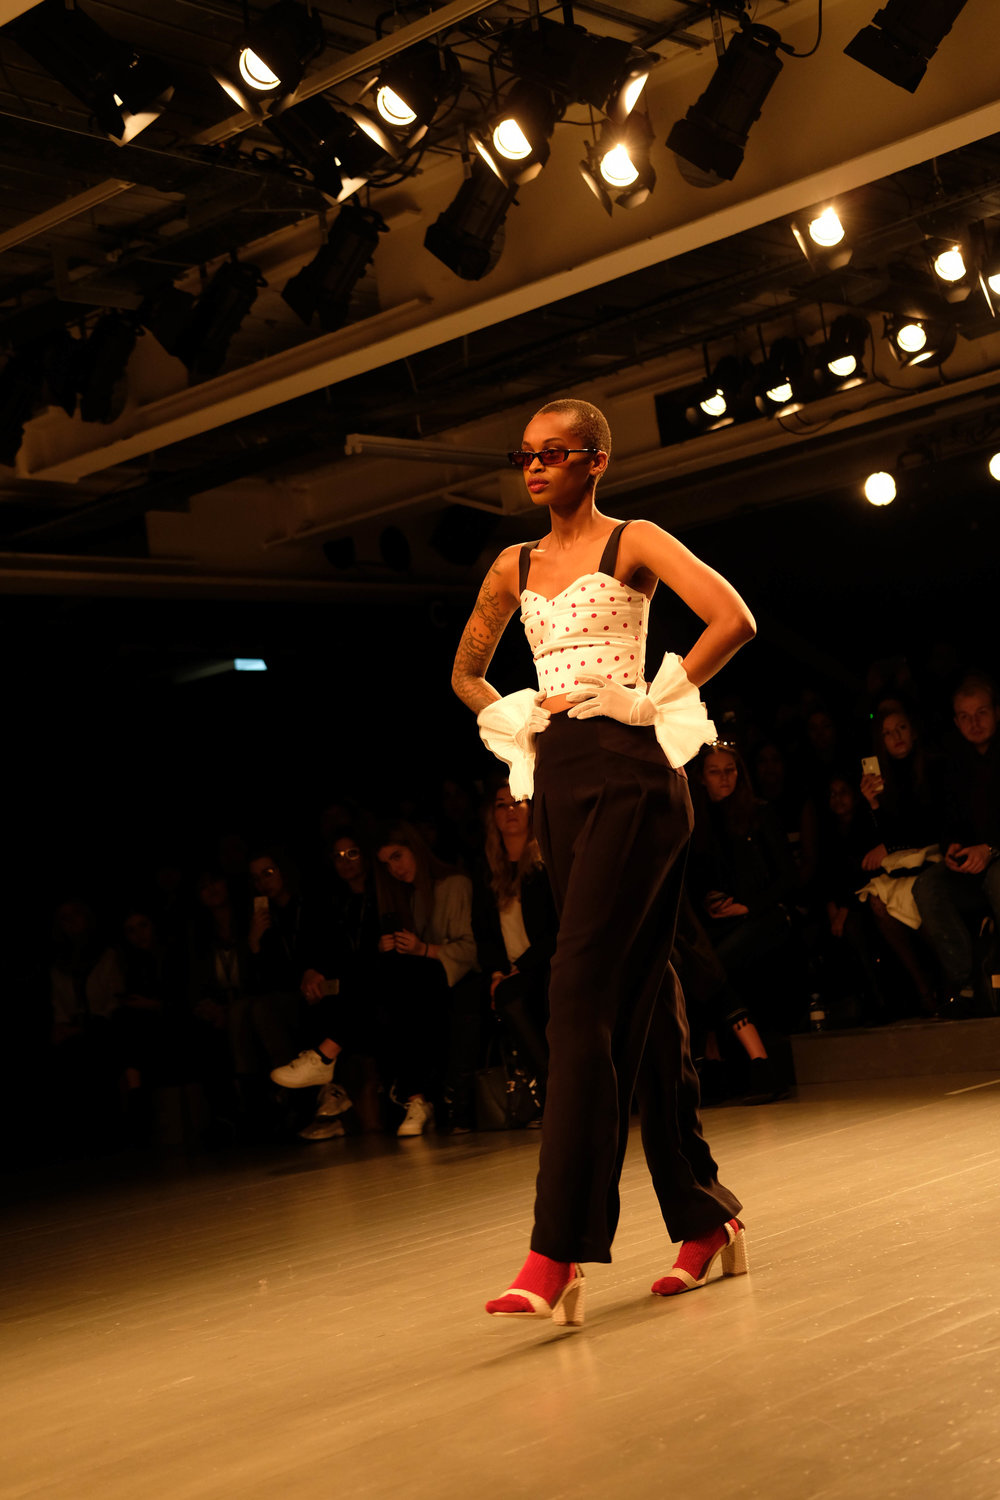 "<p style=""font-family:brandon-grotesque;font-weight:500; font-size:11px; text-center:left; color:light grey;letter-spacing: 1px"">FEBRUARY 24, 2018 • LFW '18 • 📍London, UK 🇬🇧</p>"